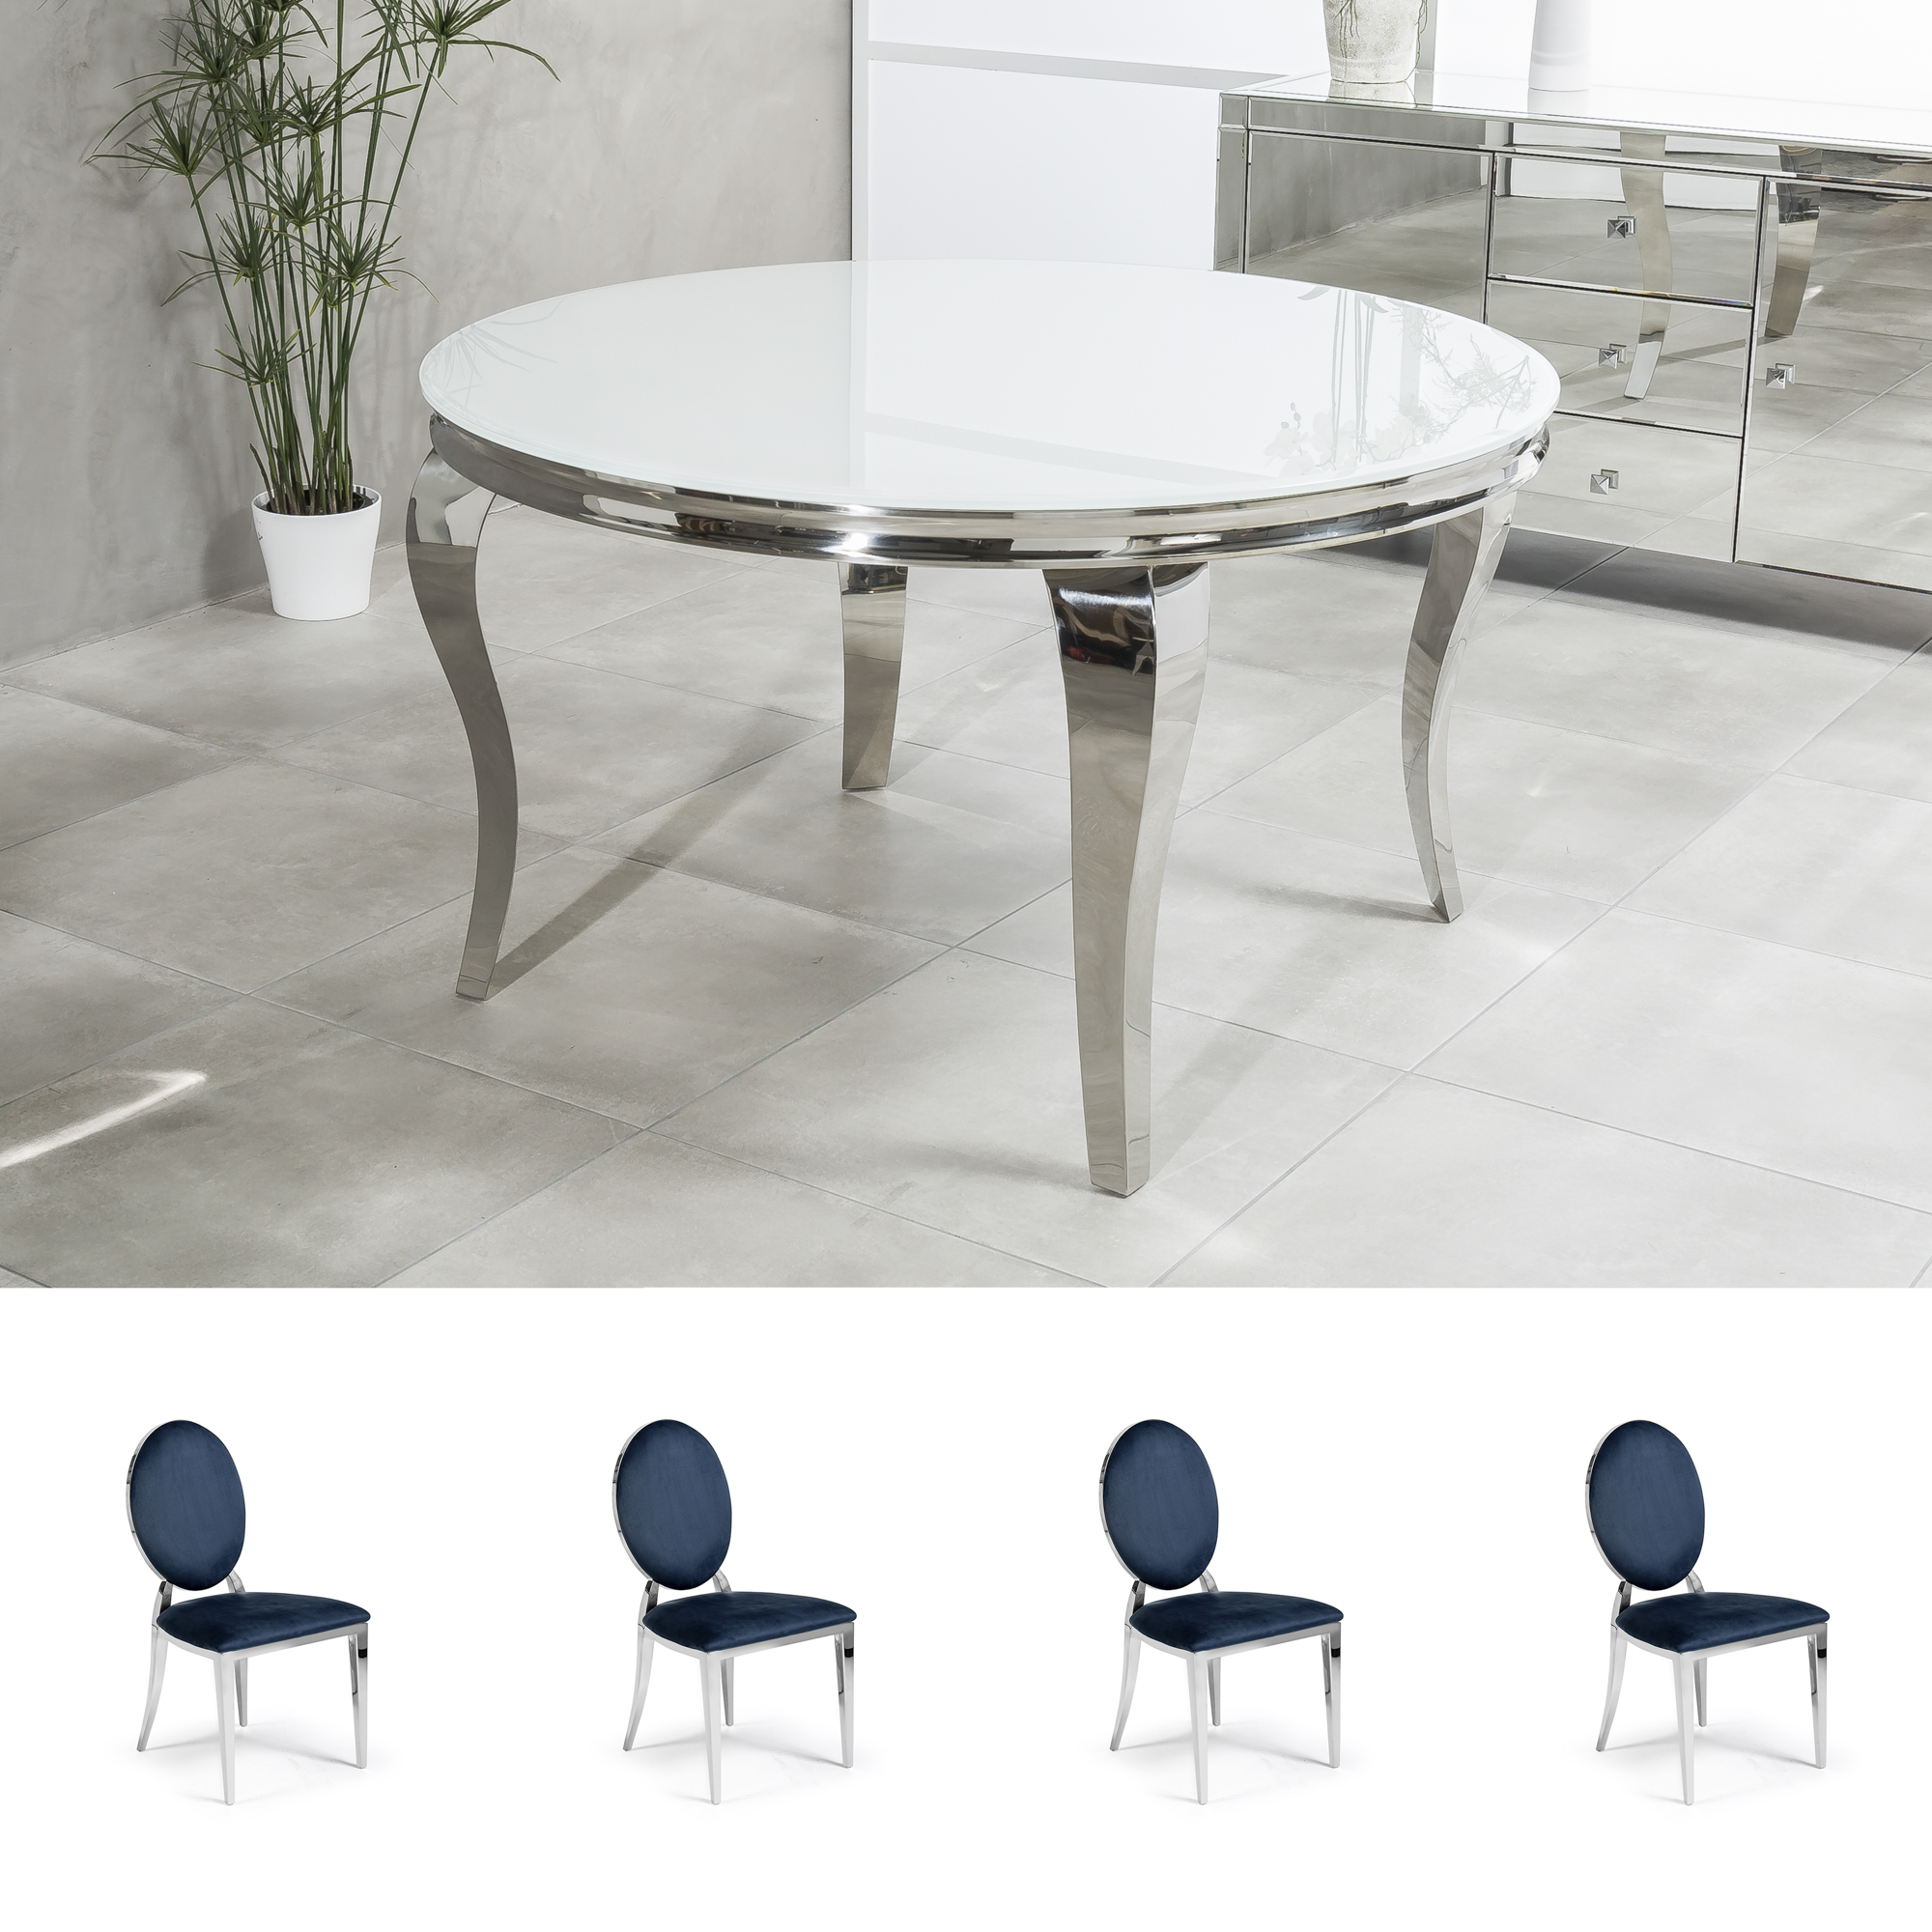 6e0aa1531f792 1.3m Circular Louis Polished Steel Dining White Glass Table Set with 4  Louis Blue Dining Chairs